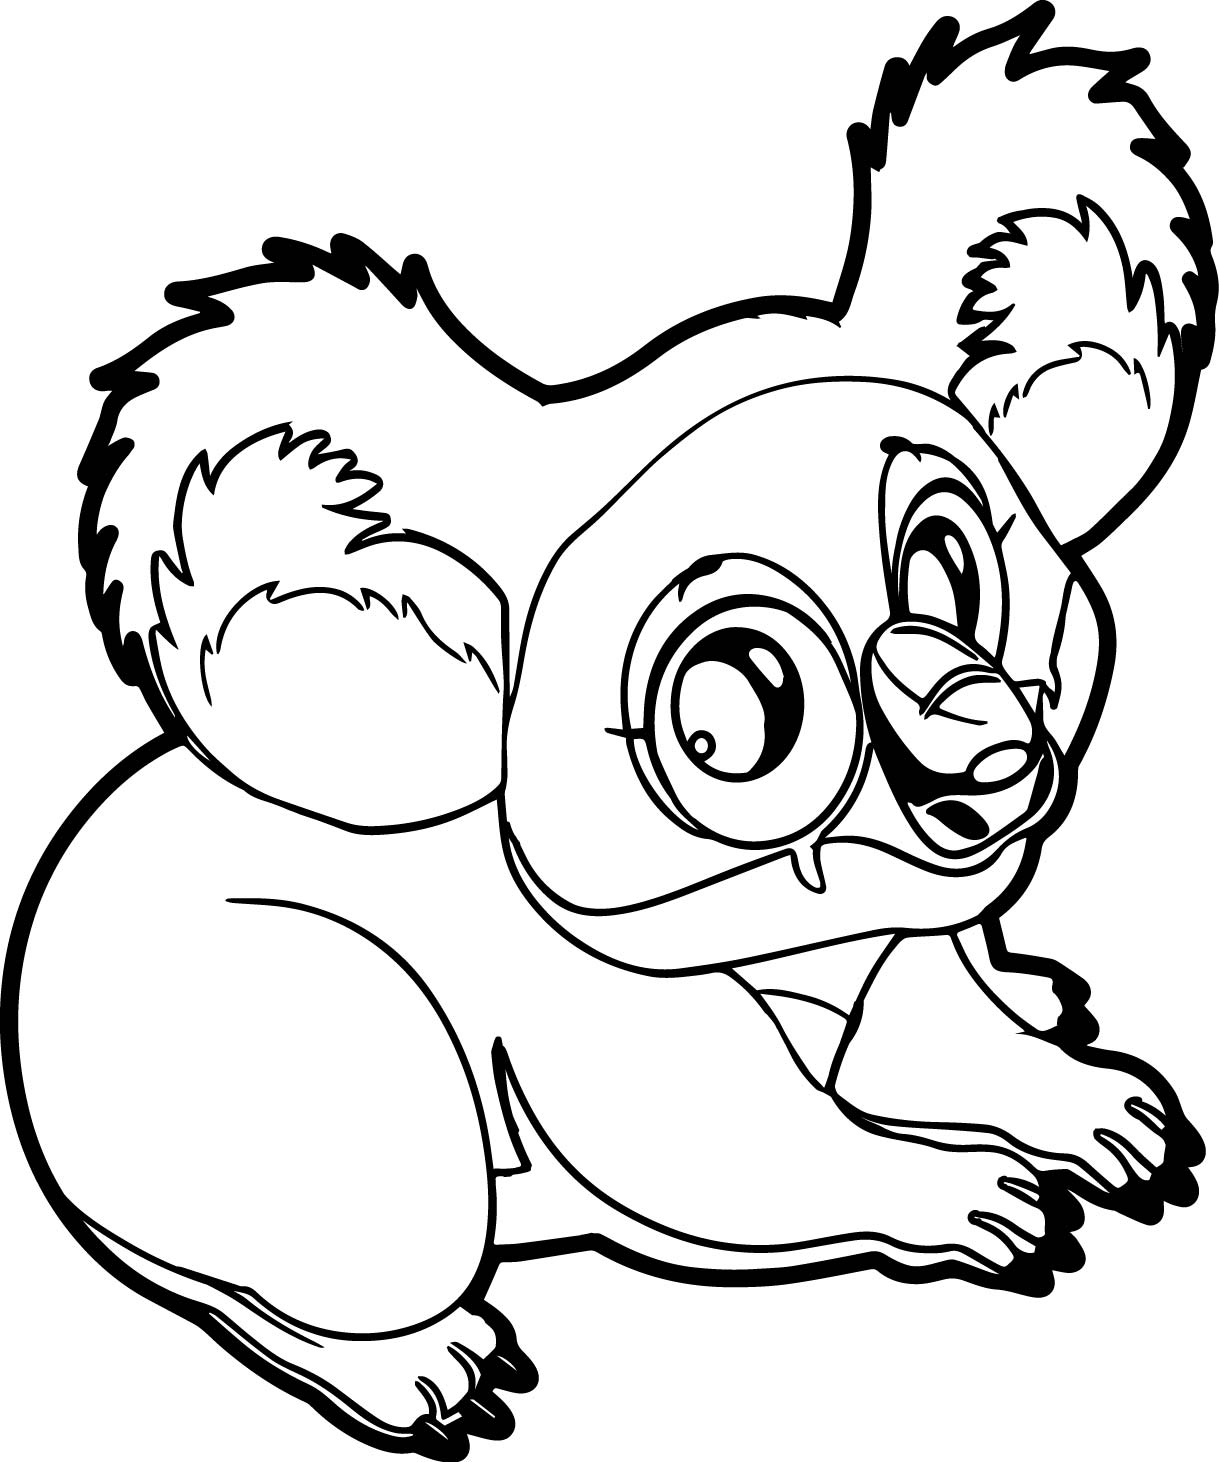 Marsupial coloring #1, Download drawings